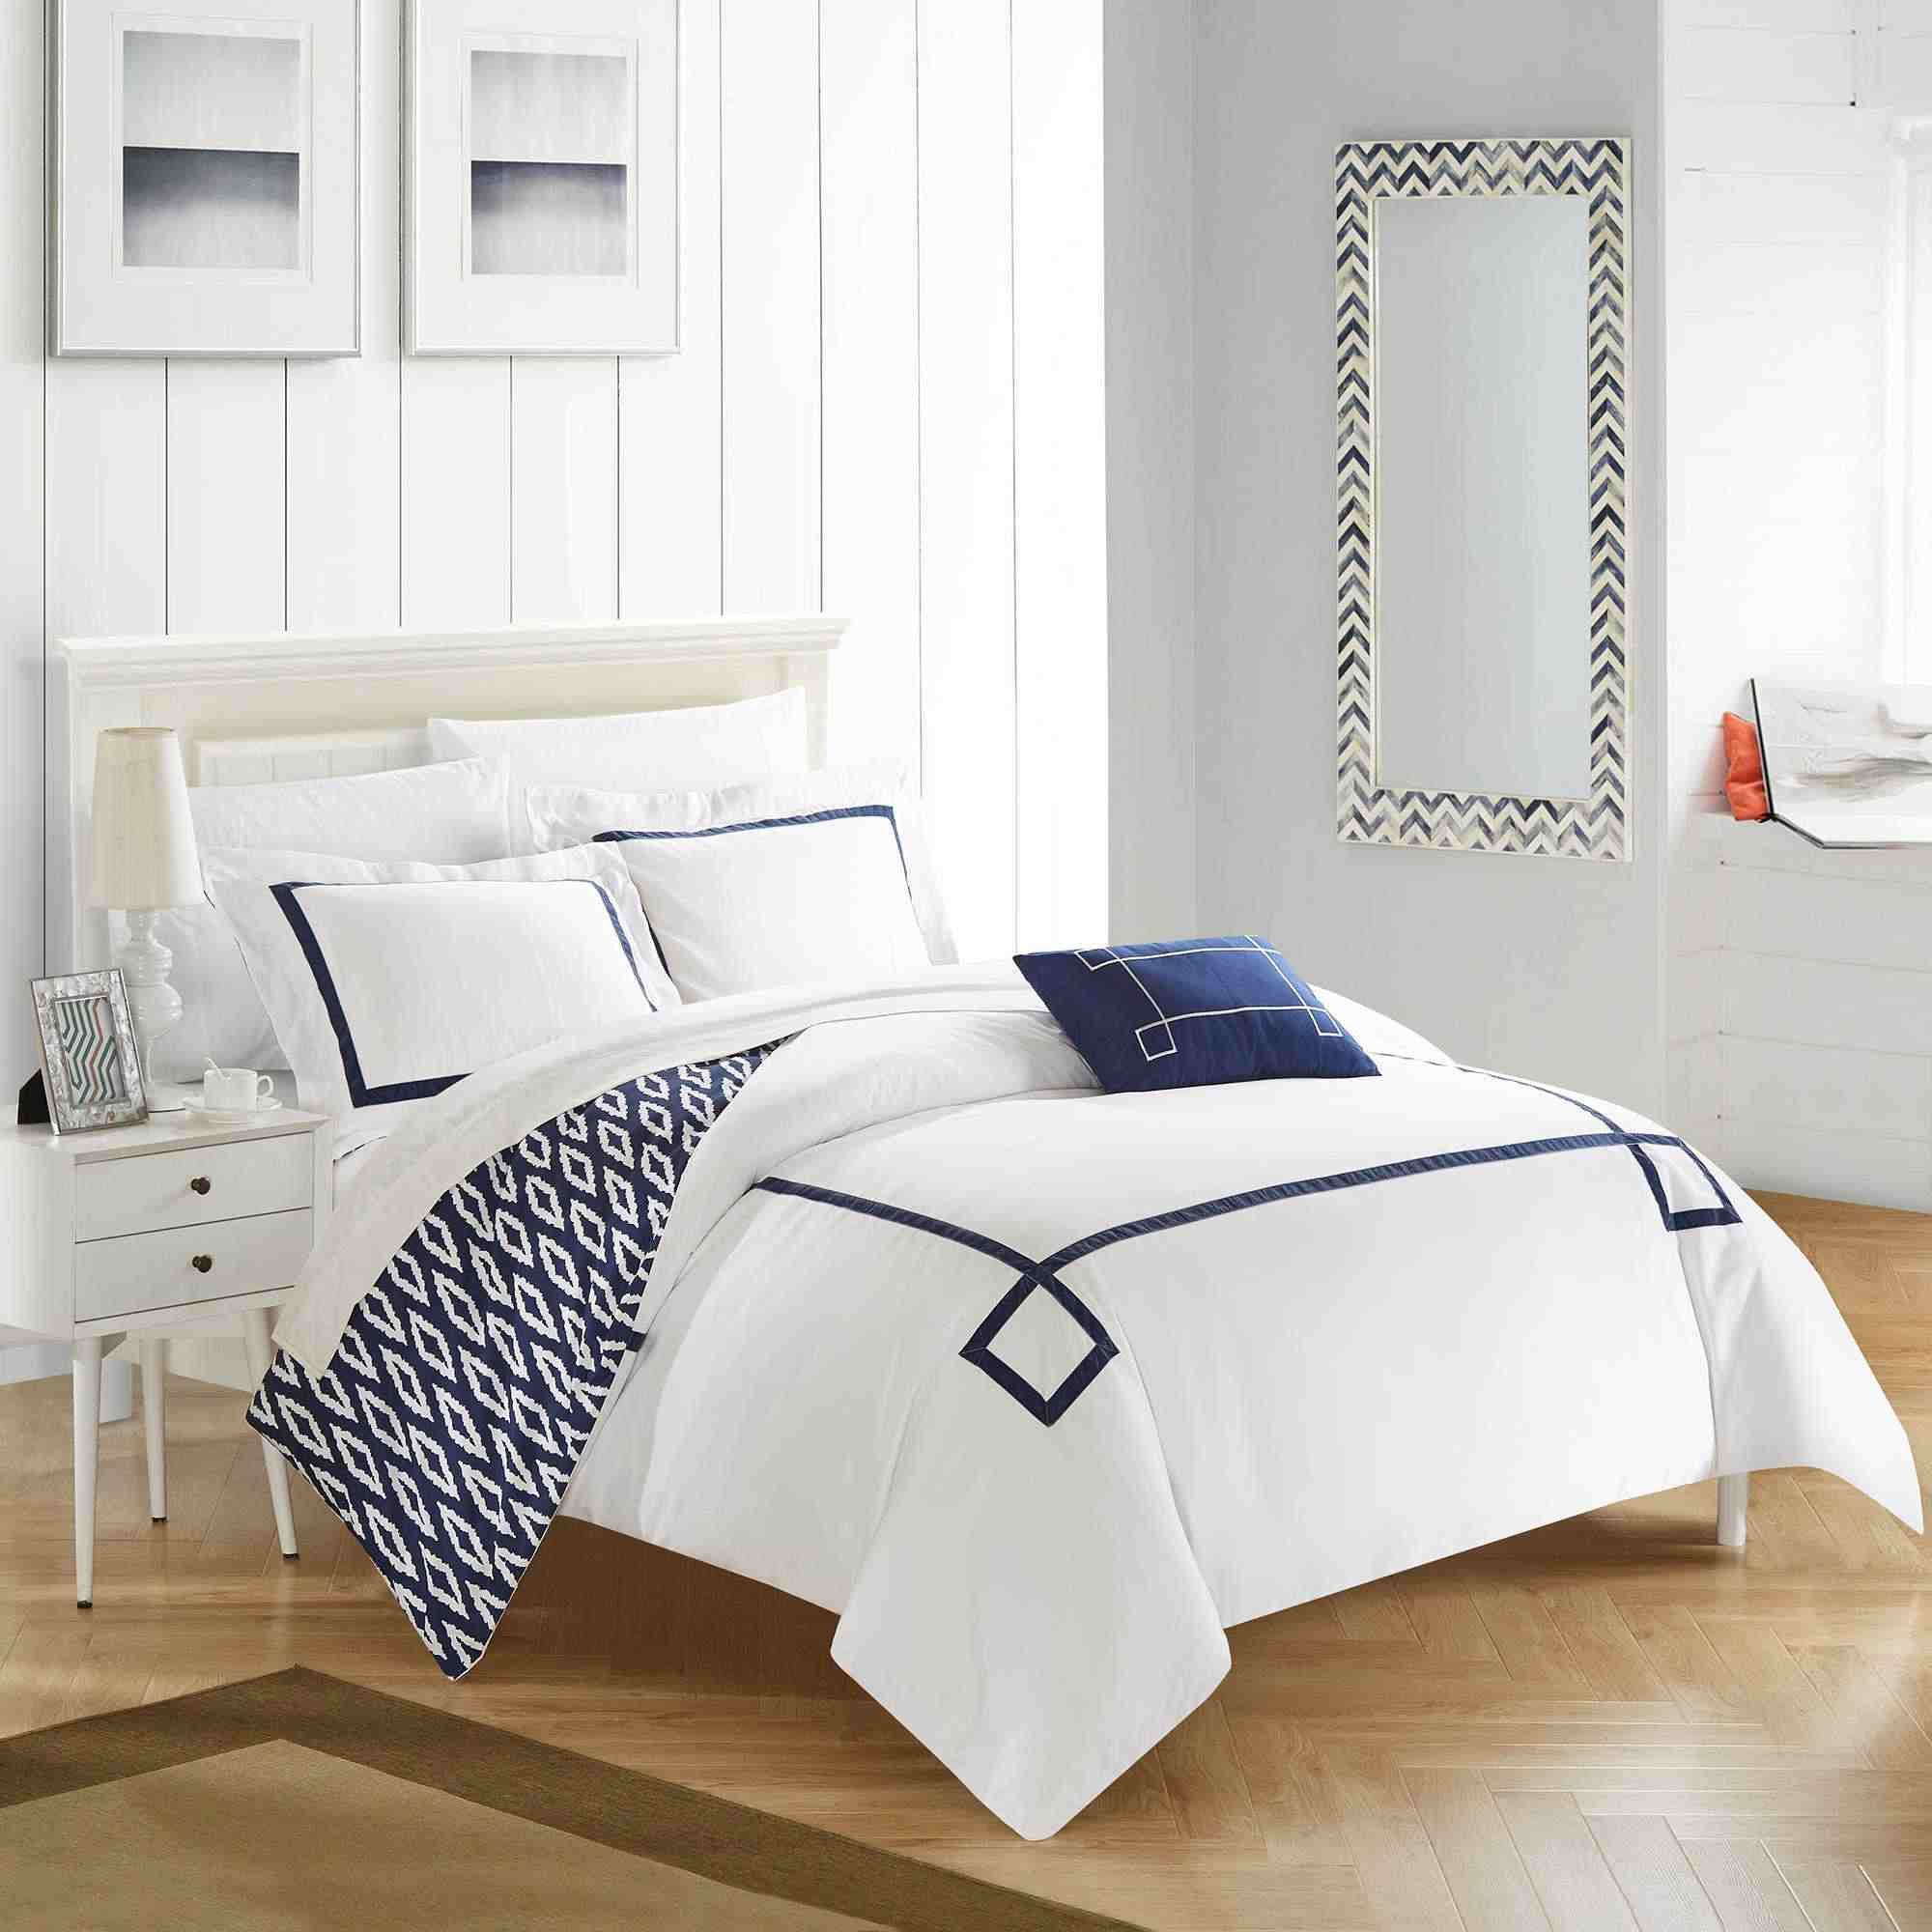 71 Inspirational Stock Of Strong King Size Bed Frame